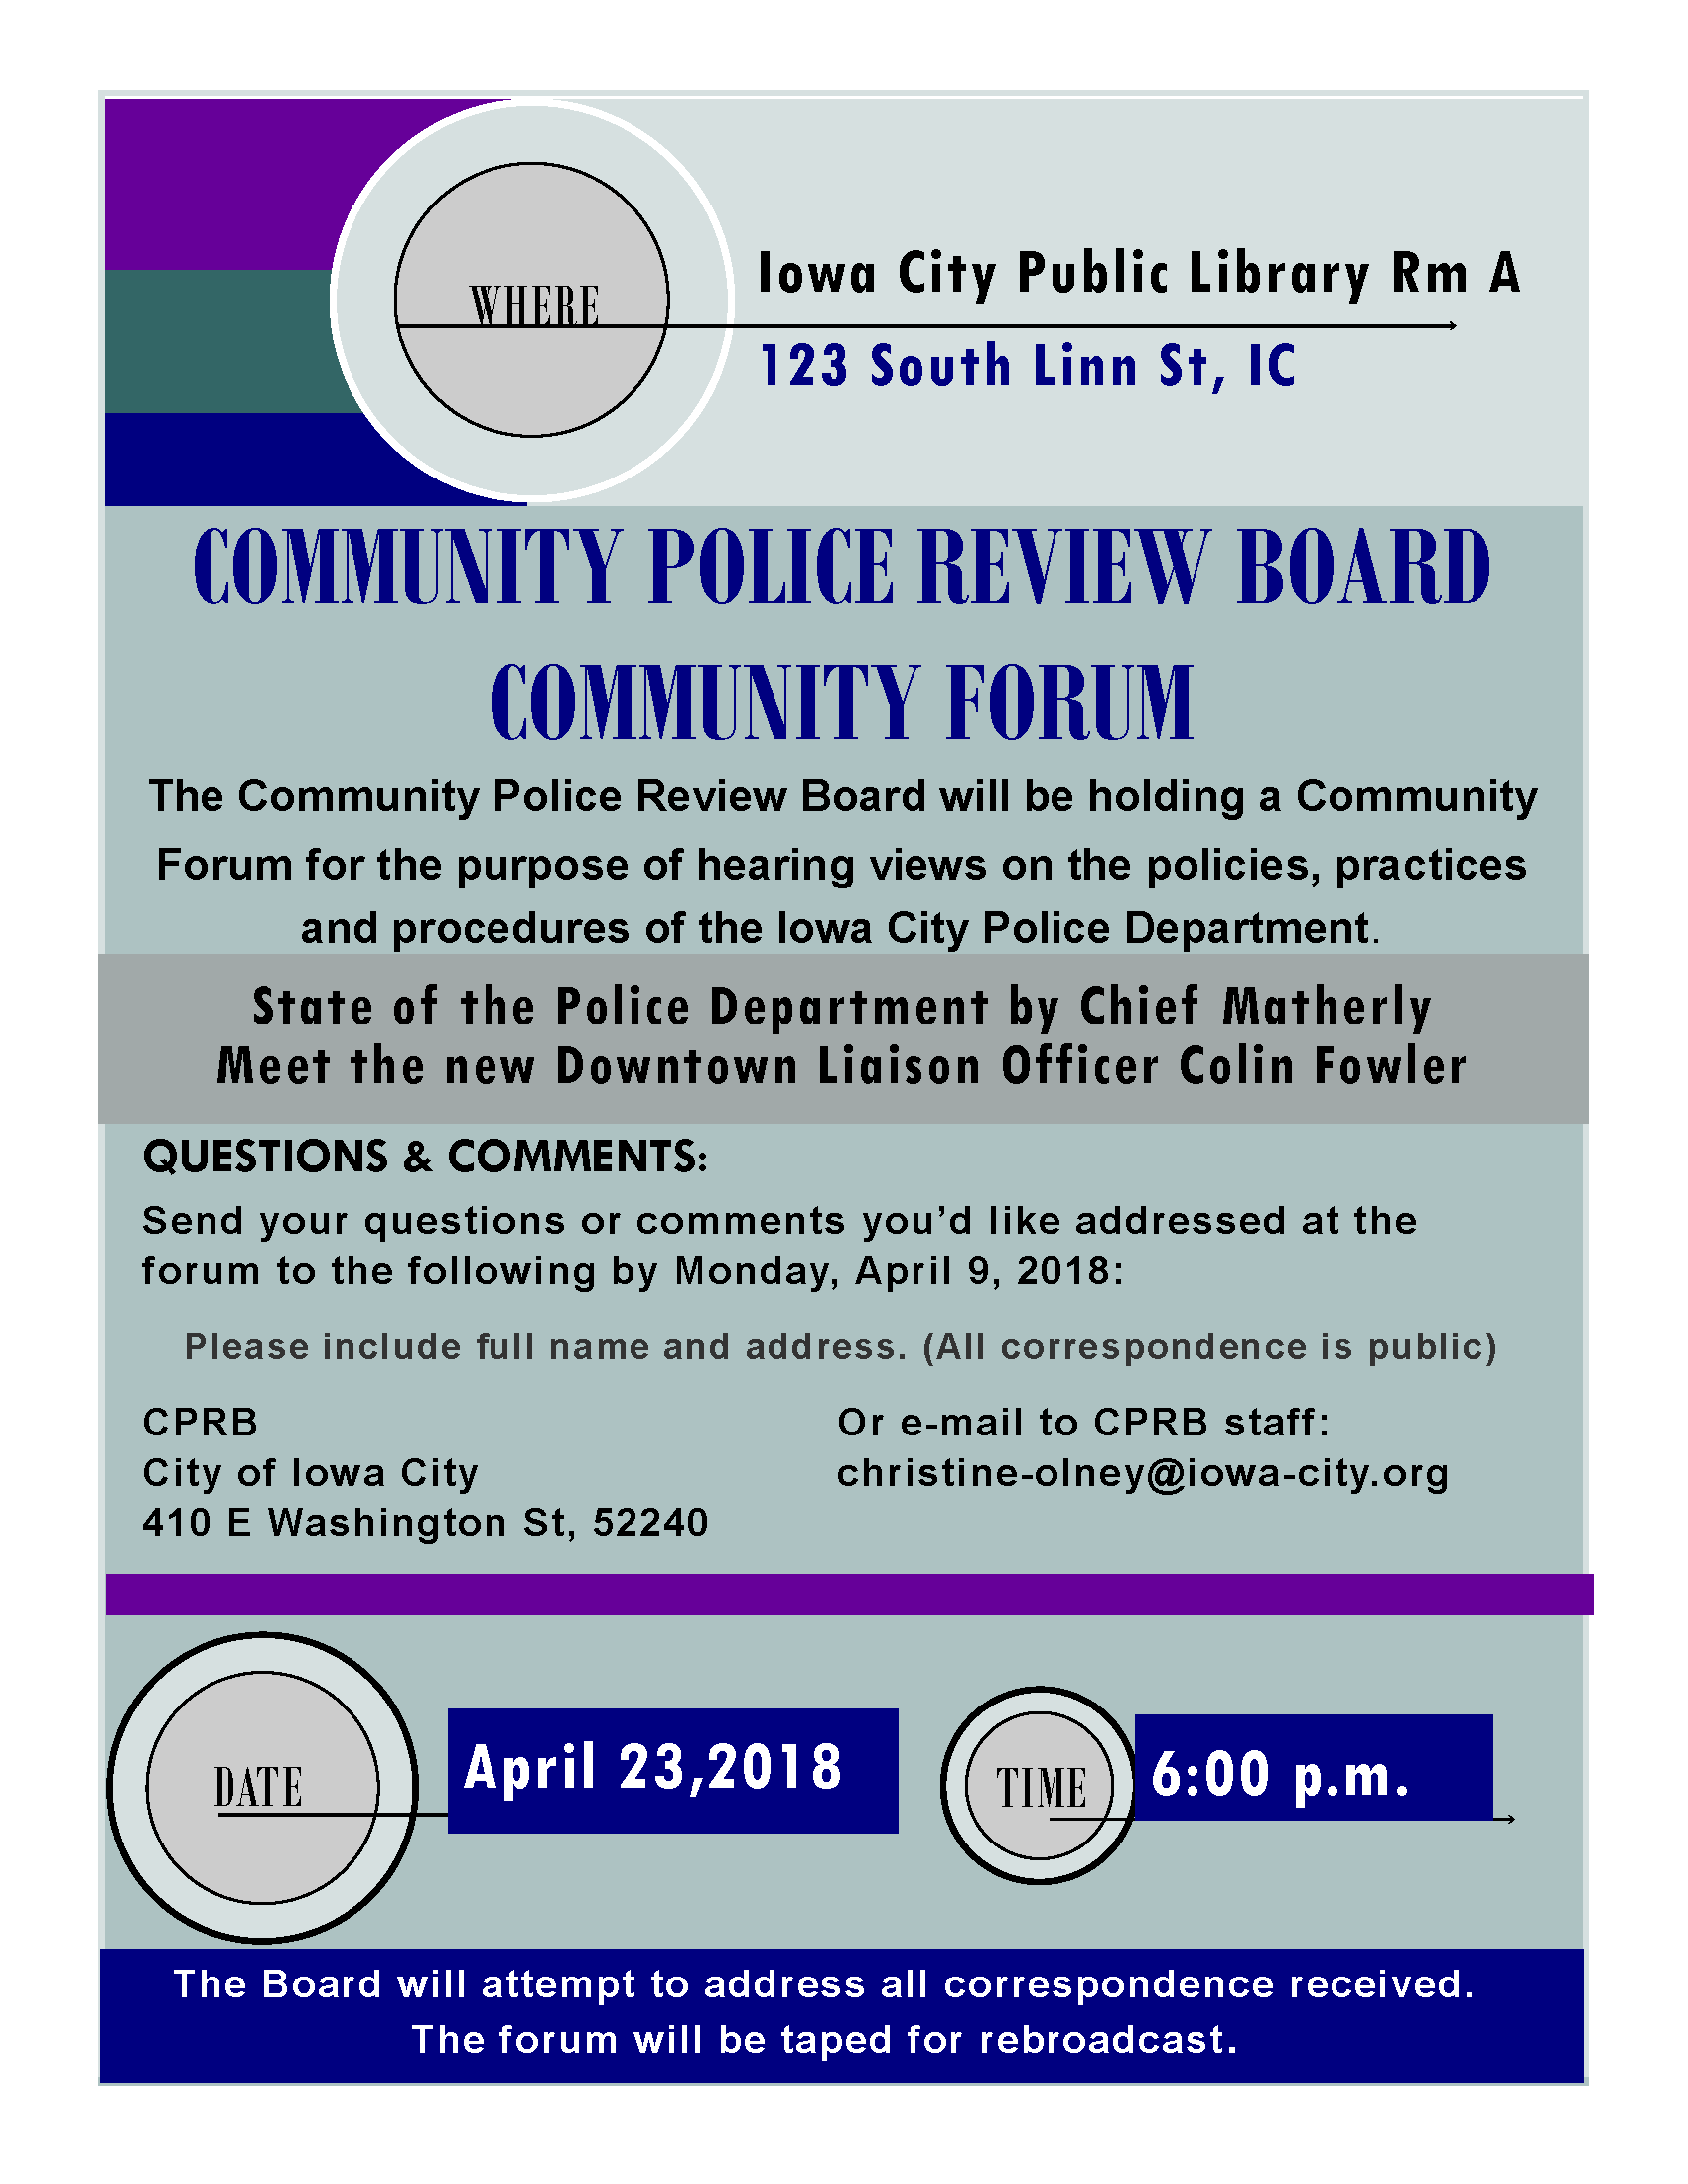 Flyer promoting CPRB Forum